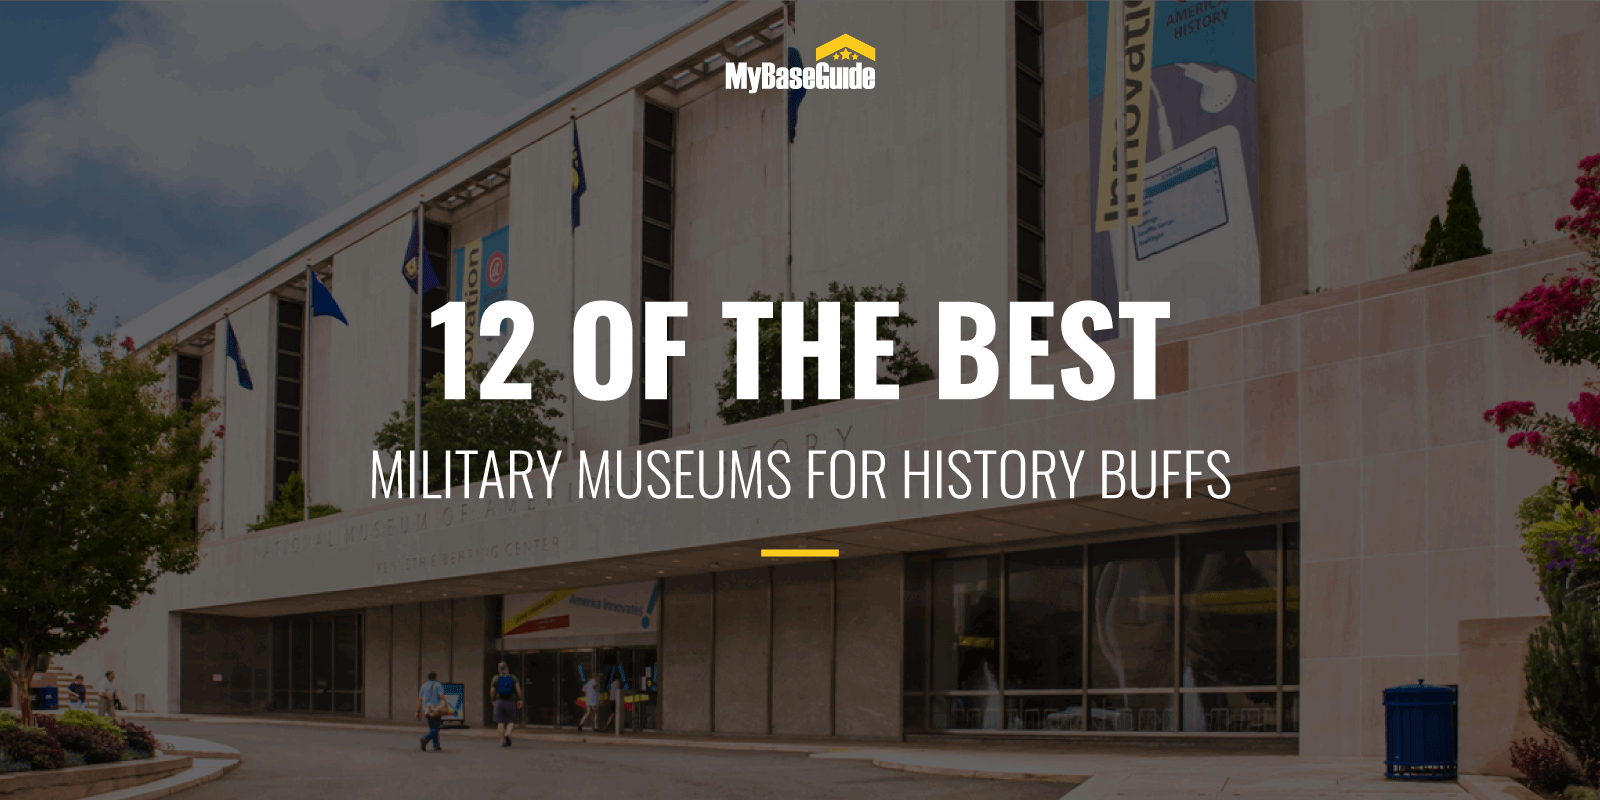 12 of the Best Military Museums for History Buffs